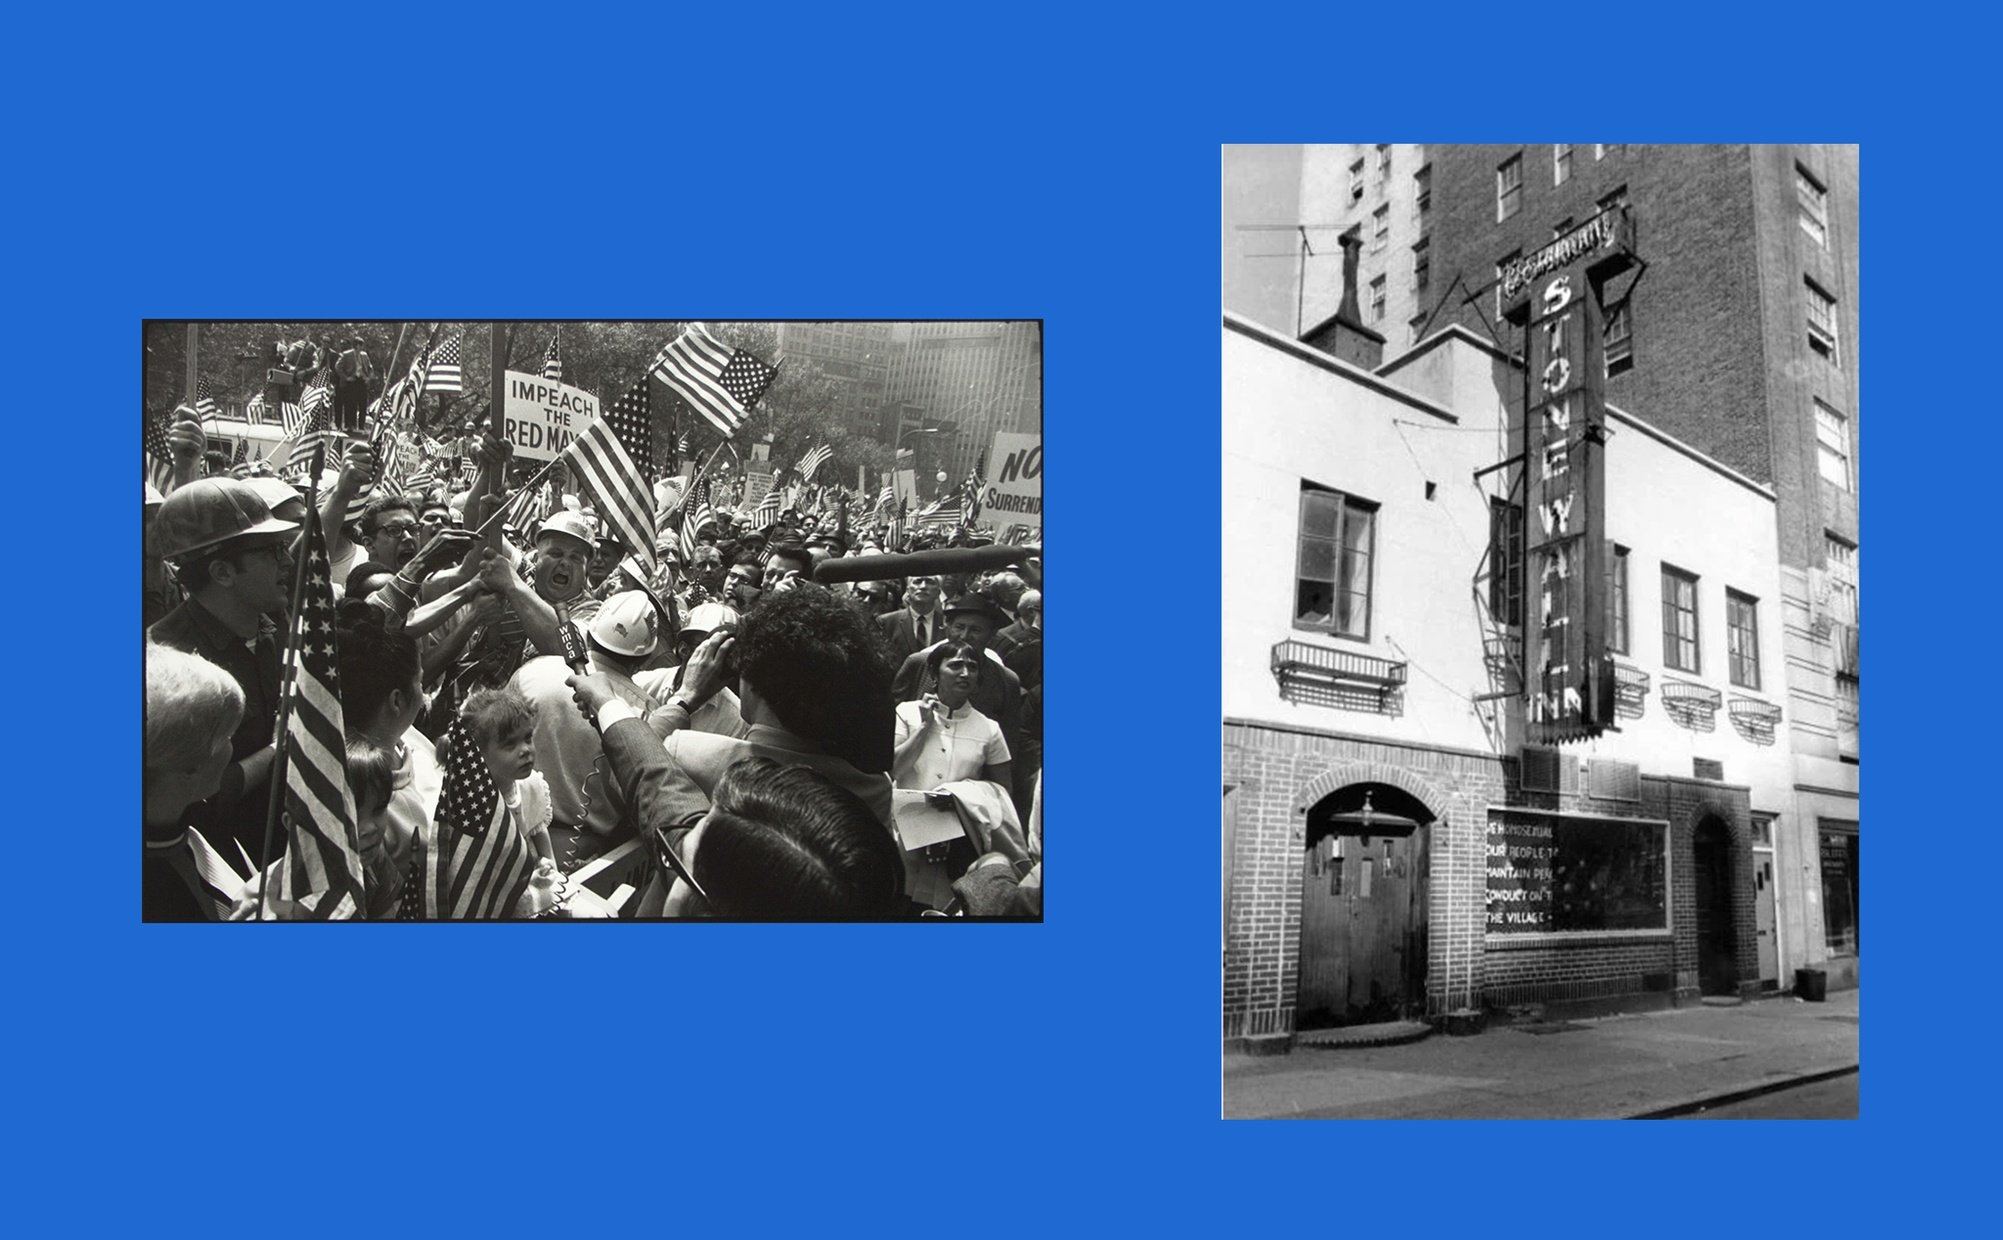 """Two images side by side, one image is of a tightly packed group of people protesting, some are yelling and others are holding mics and cameras, the other image is a black and white photograph of brick city buildings with sign that reads """"STONEWALL INN."""""""